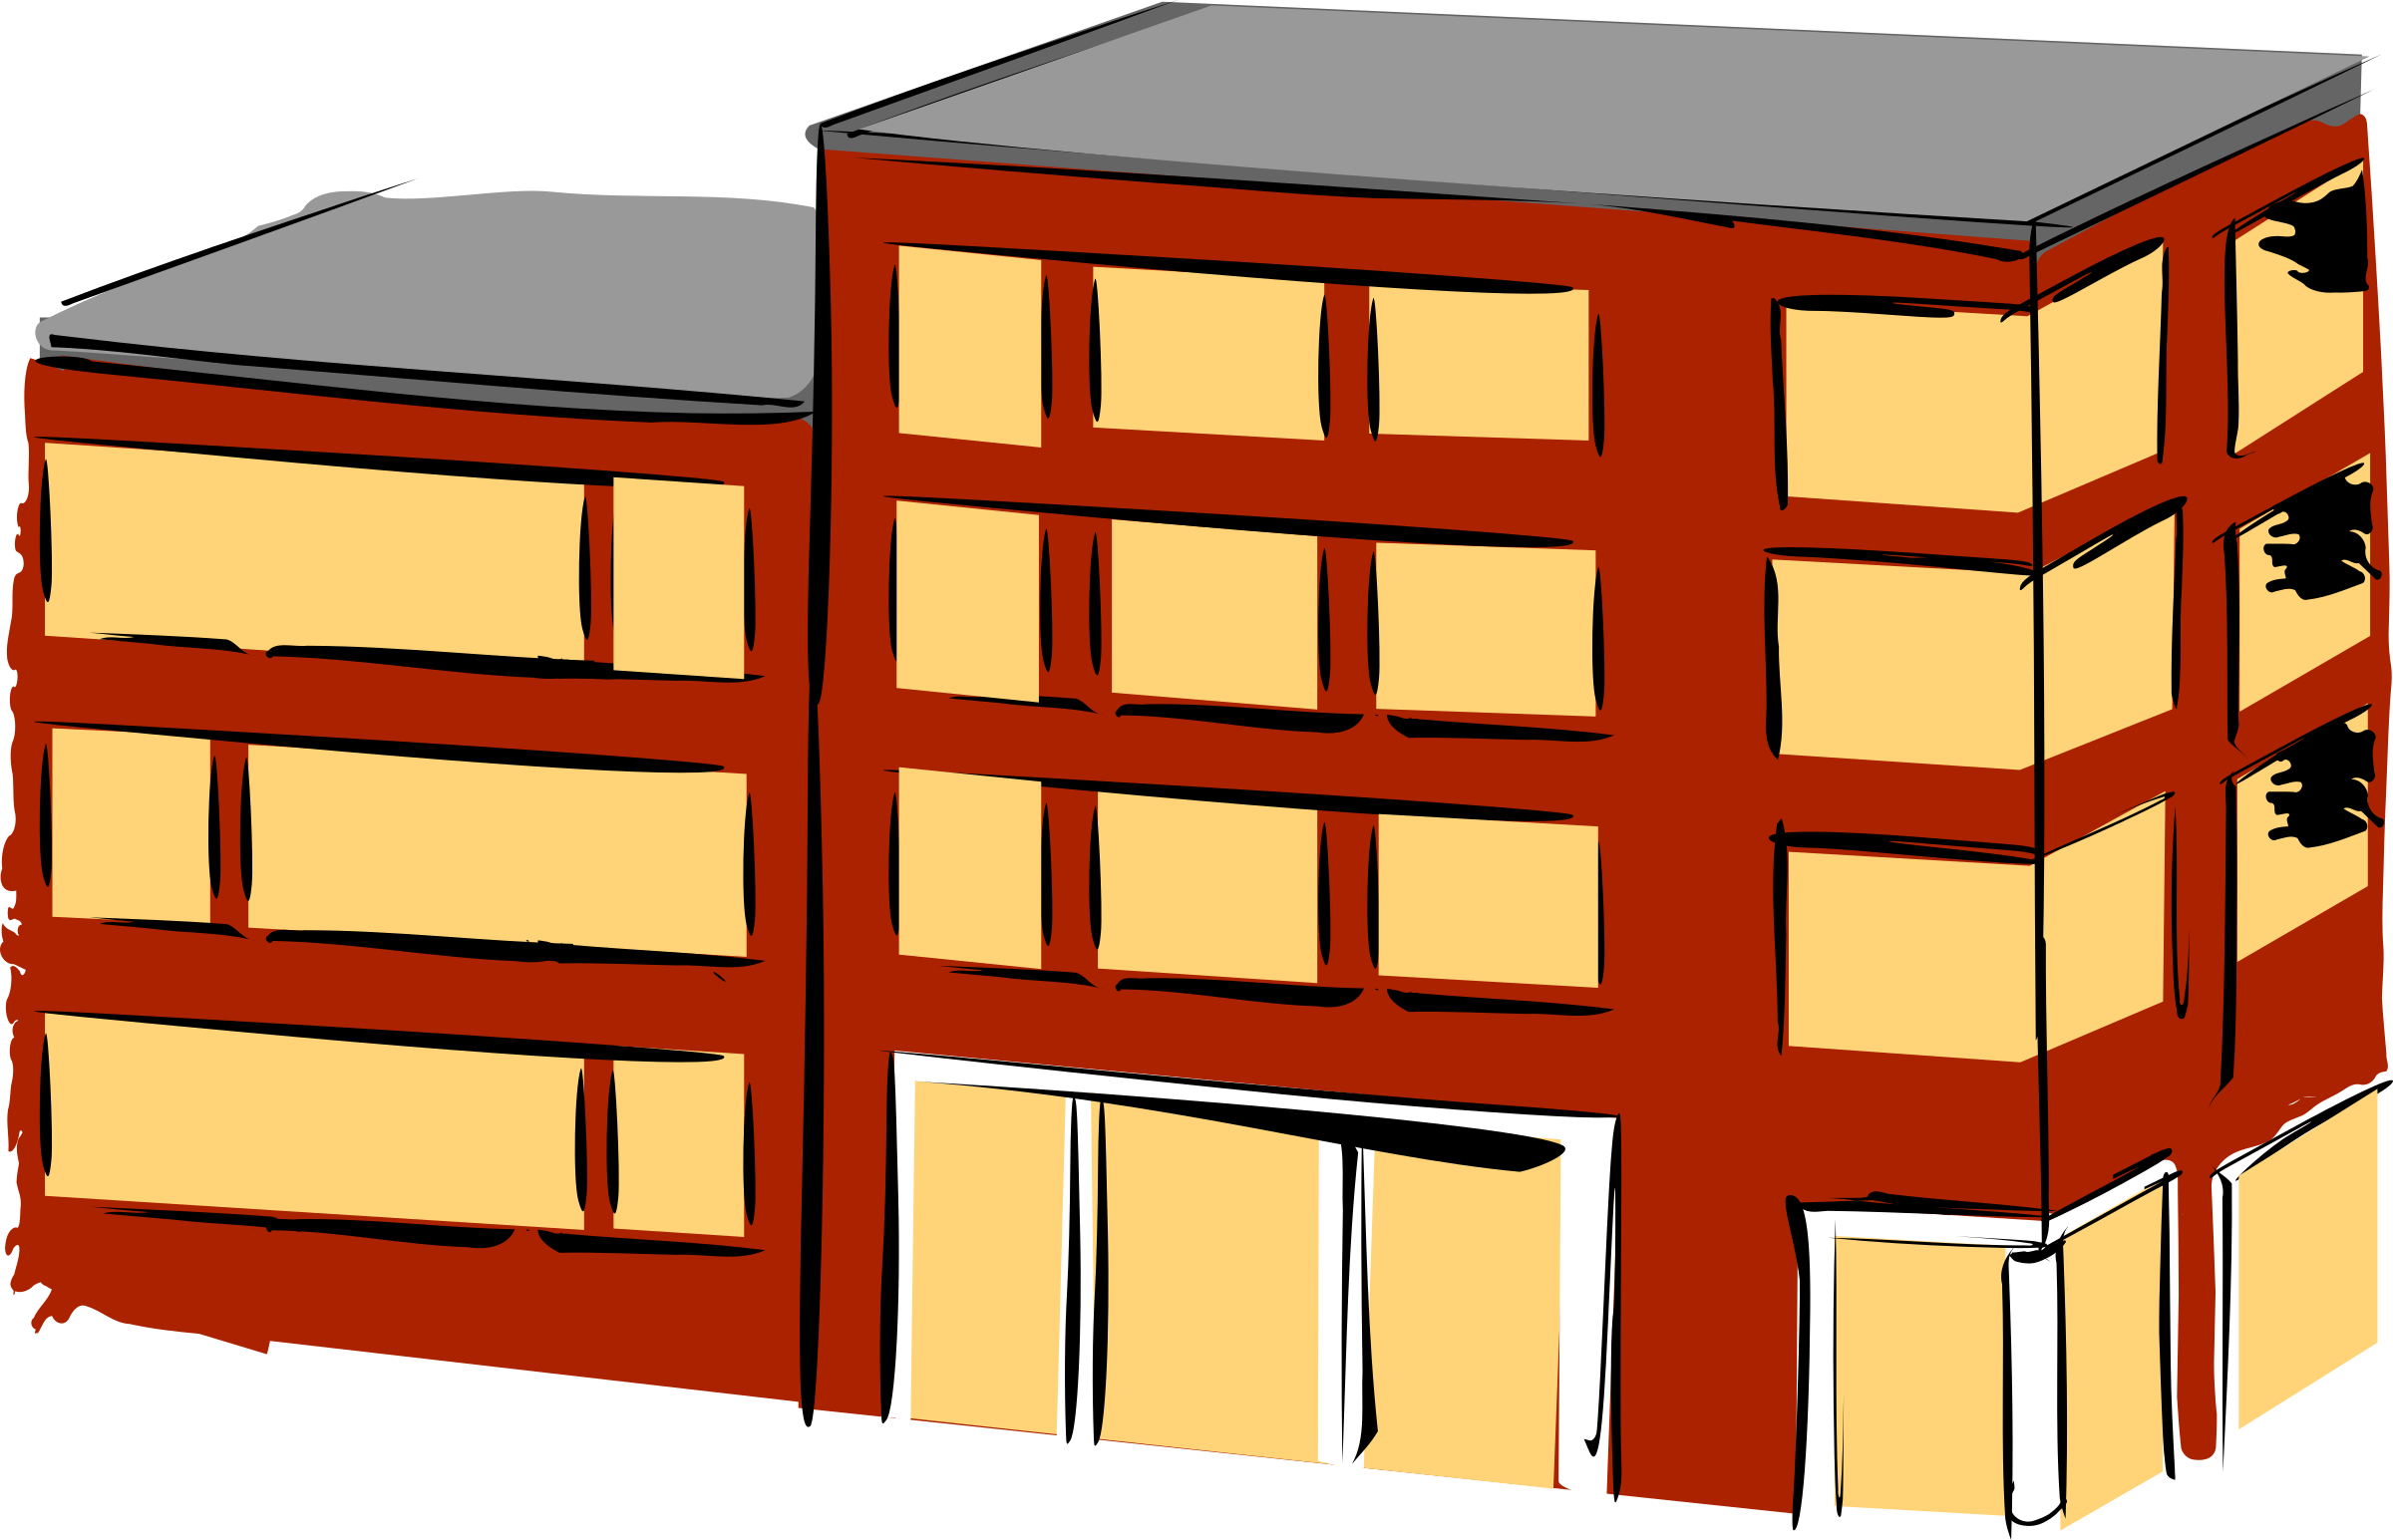 Apartment building by rdevries